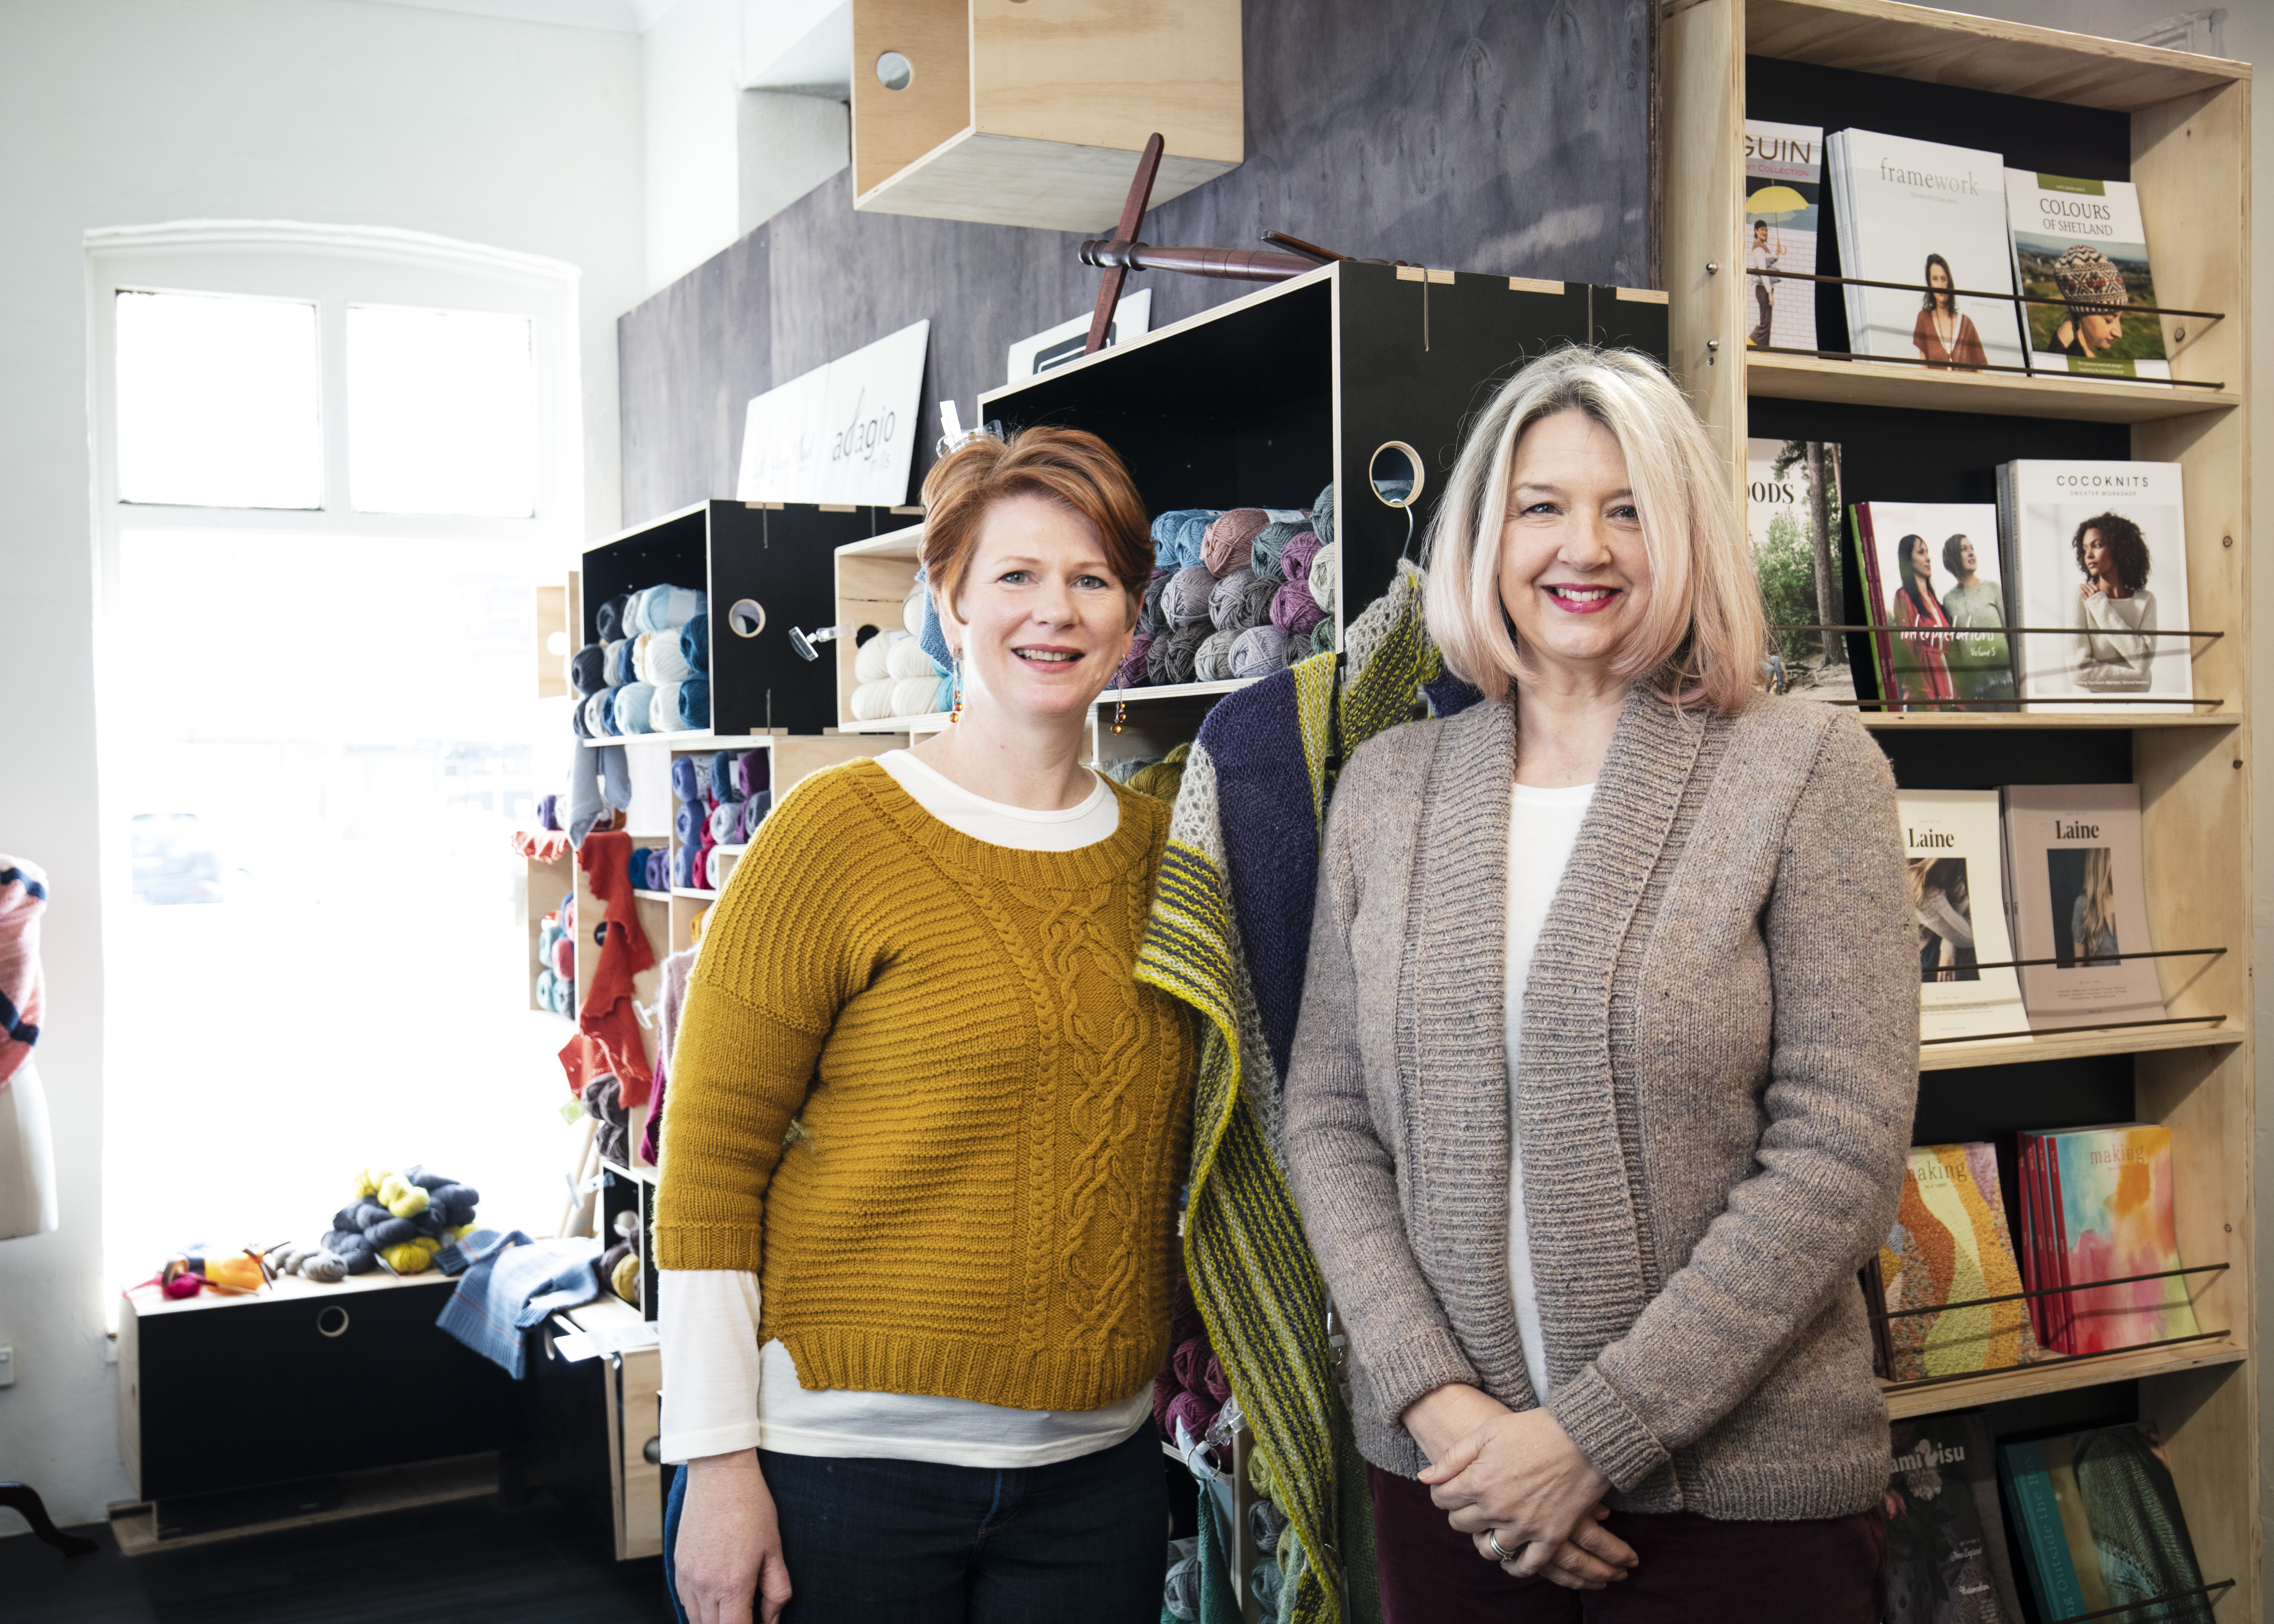 https://sydney-craft-week-prd.s3.amazonaws.com/media/uploads/images/Skein_Sisters._Deb_McDonald_and_Janine_Smith_right._Pic_by_Philip_Le_Masurier.jpg